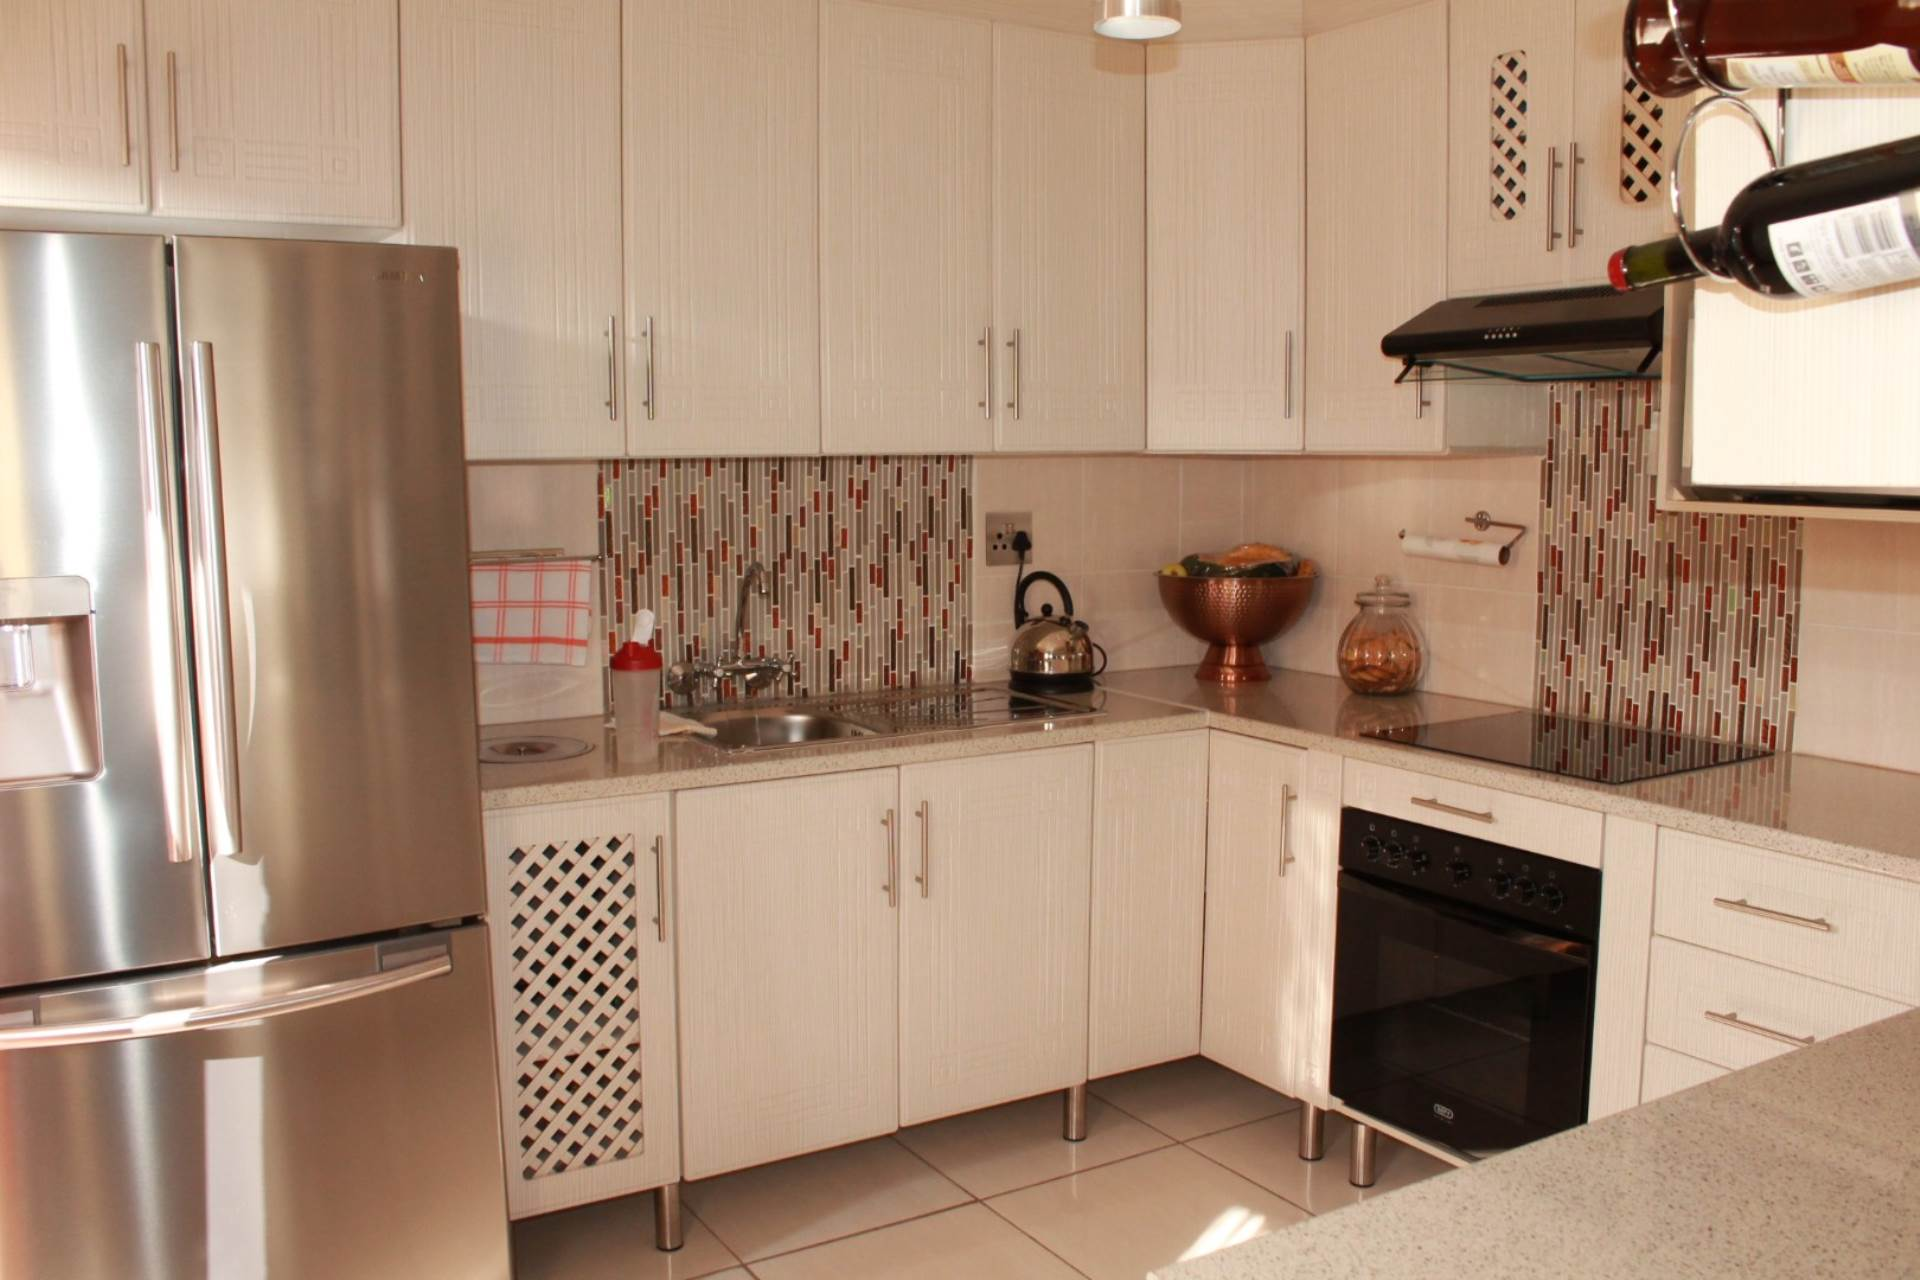 Property and Houses for sale in Karenpark, Townhouse, 2 Bedrooms - ZAR 724,000